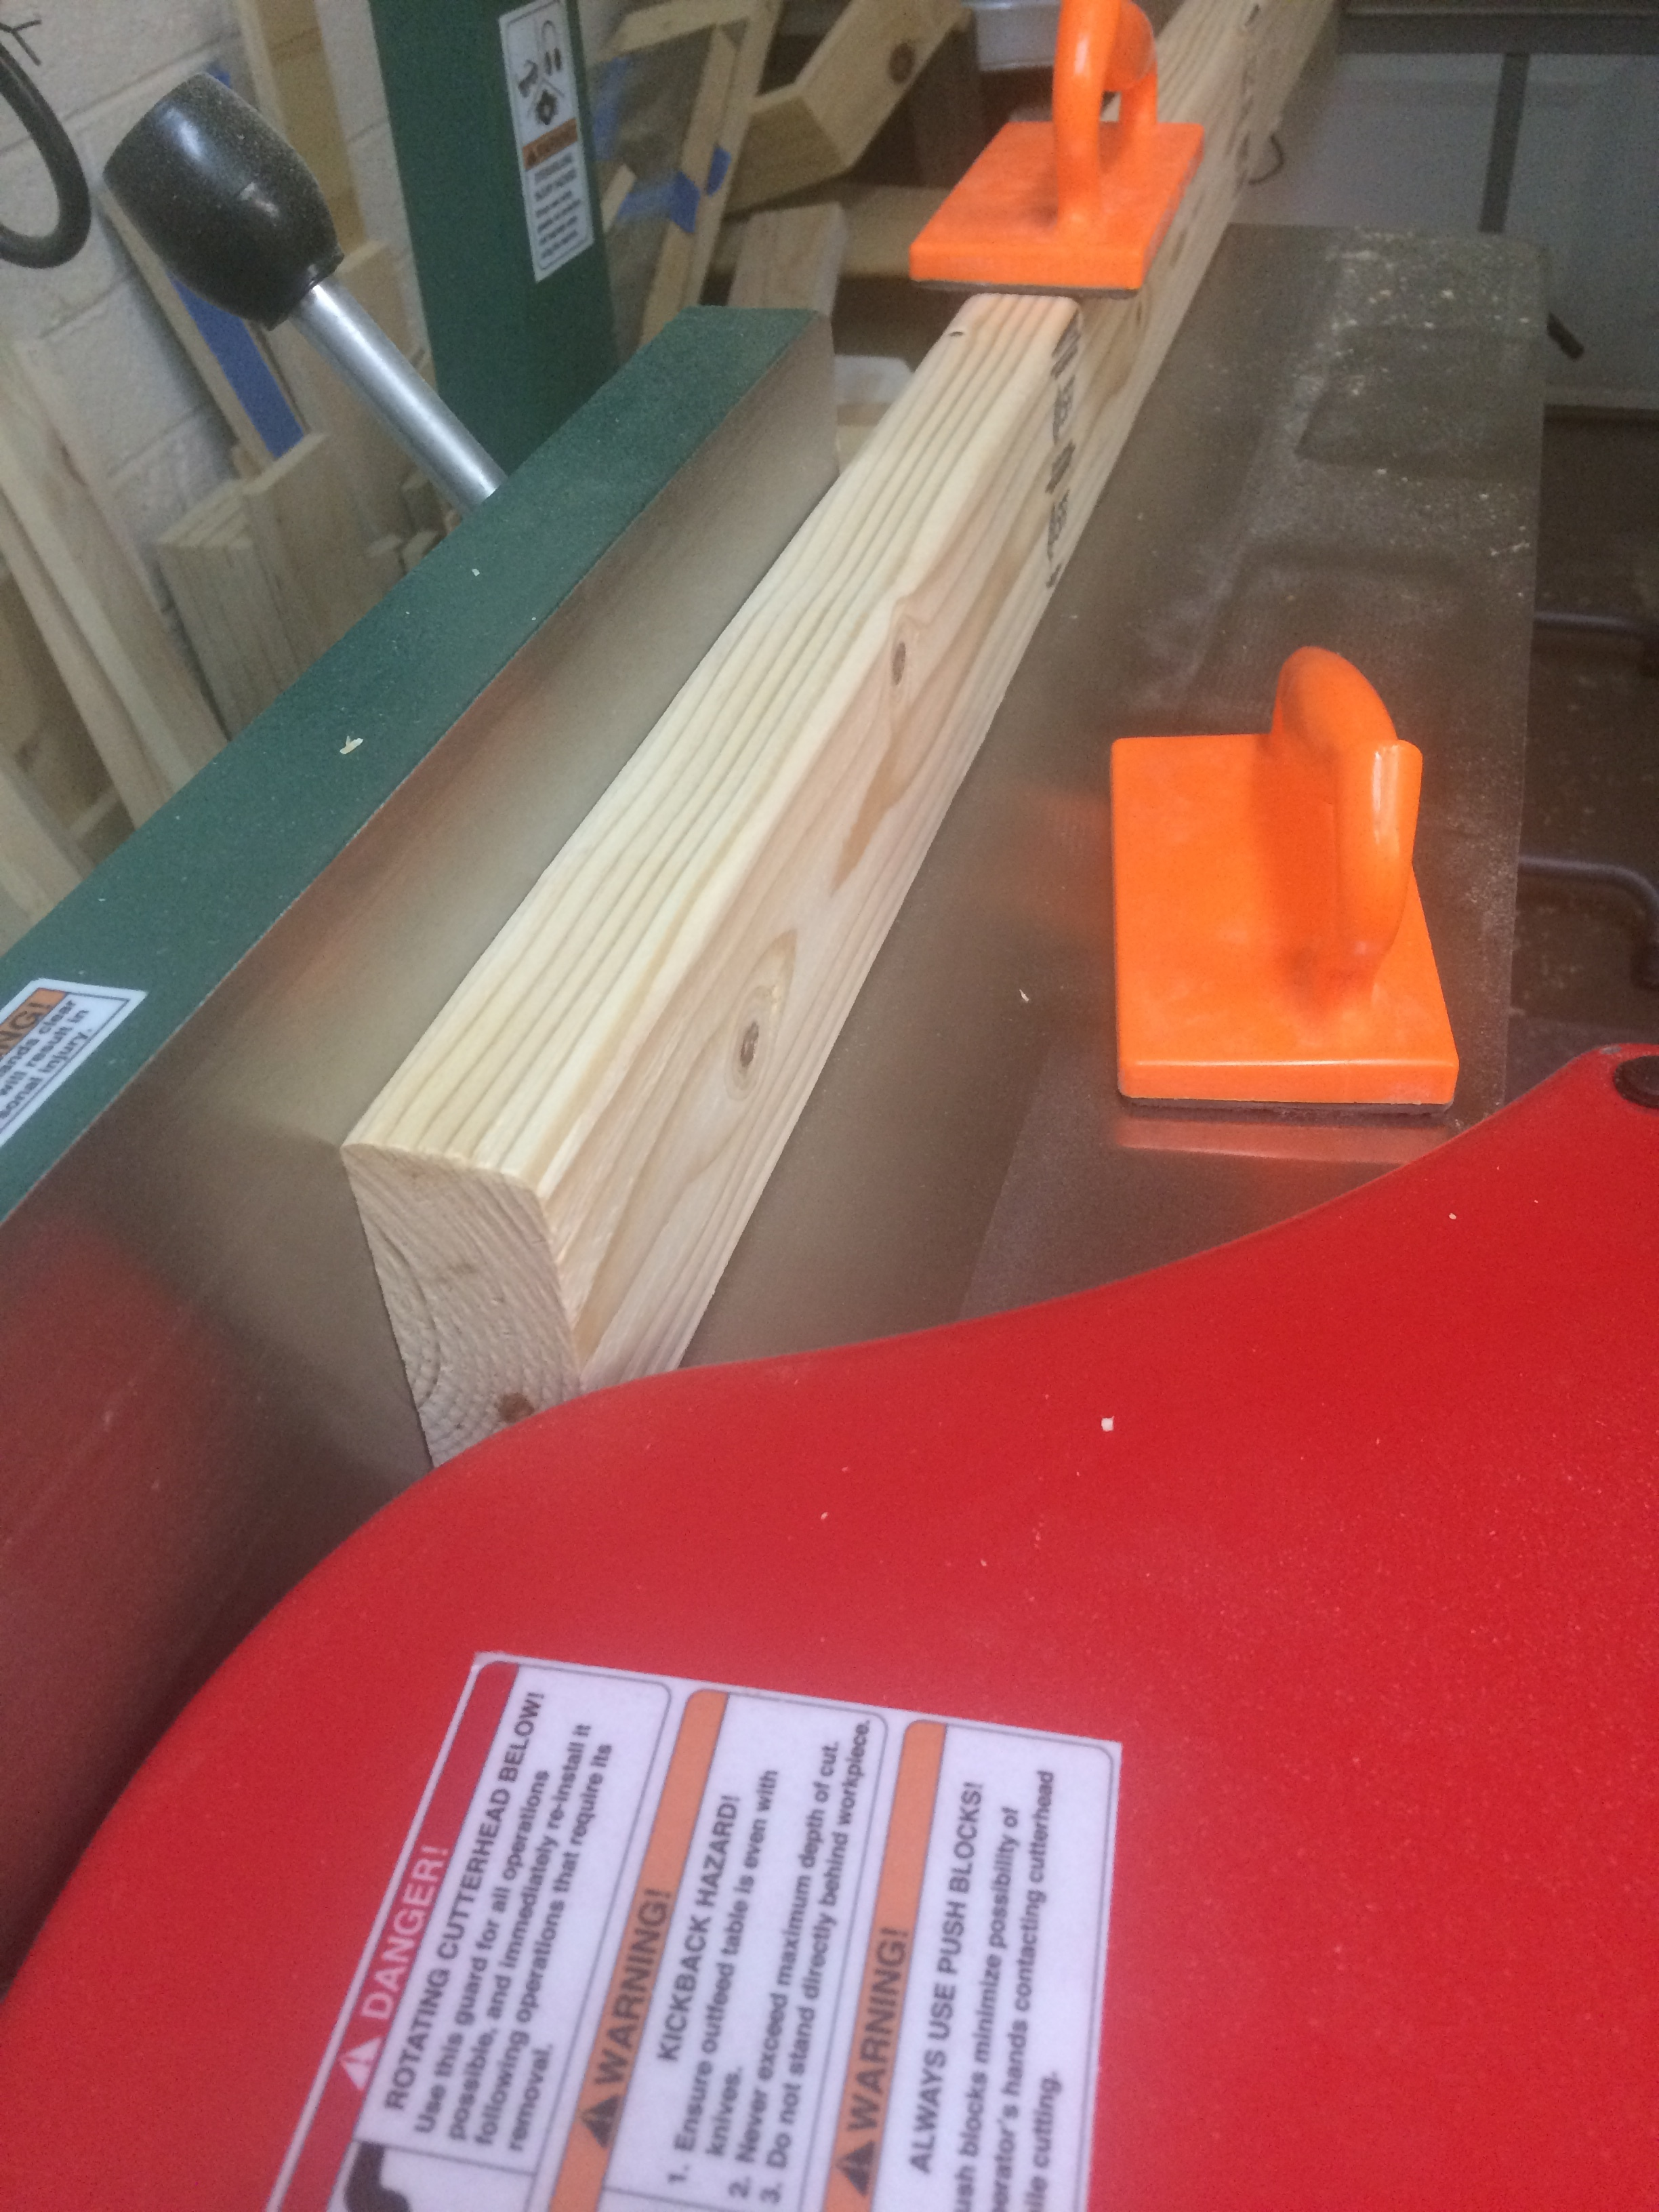 Edge plane on the jointer.